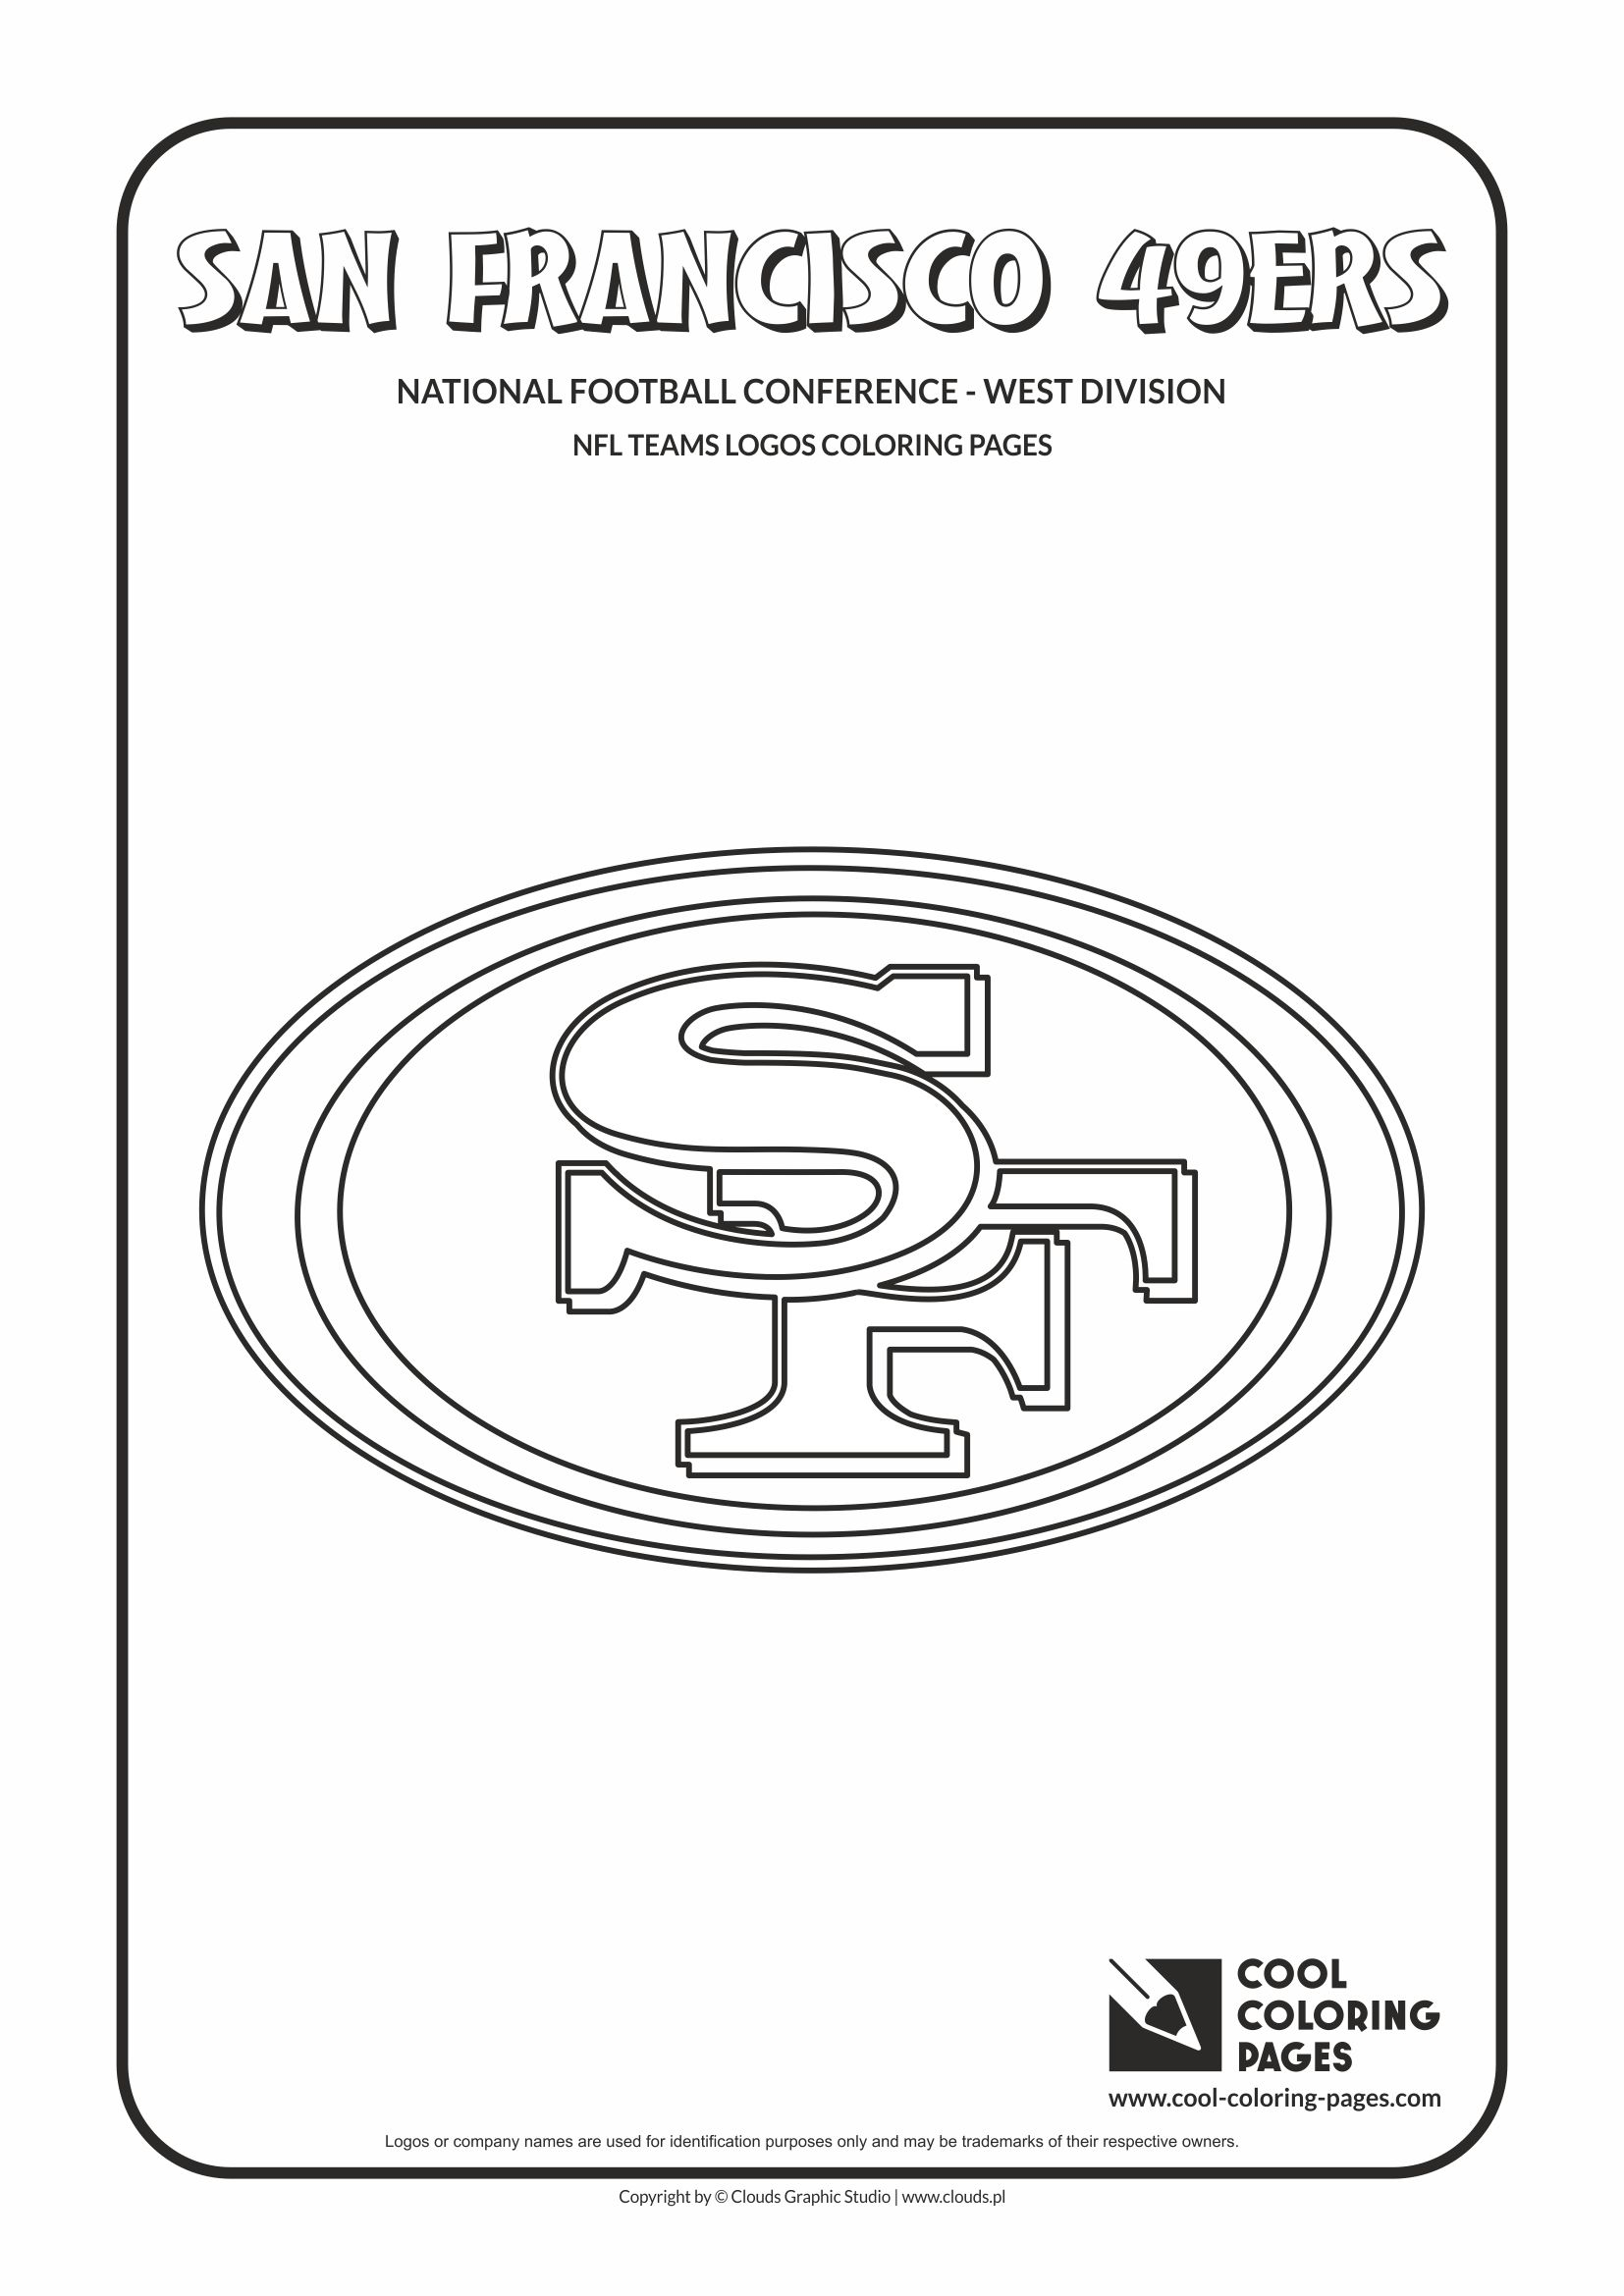 Cool coloring pages nfl teams logos coloring pages cool for Sf 49ers coloring pages